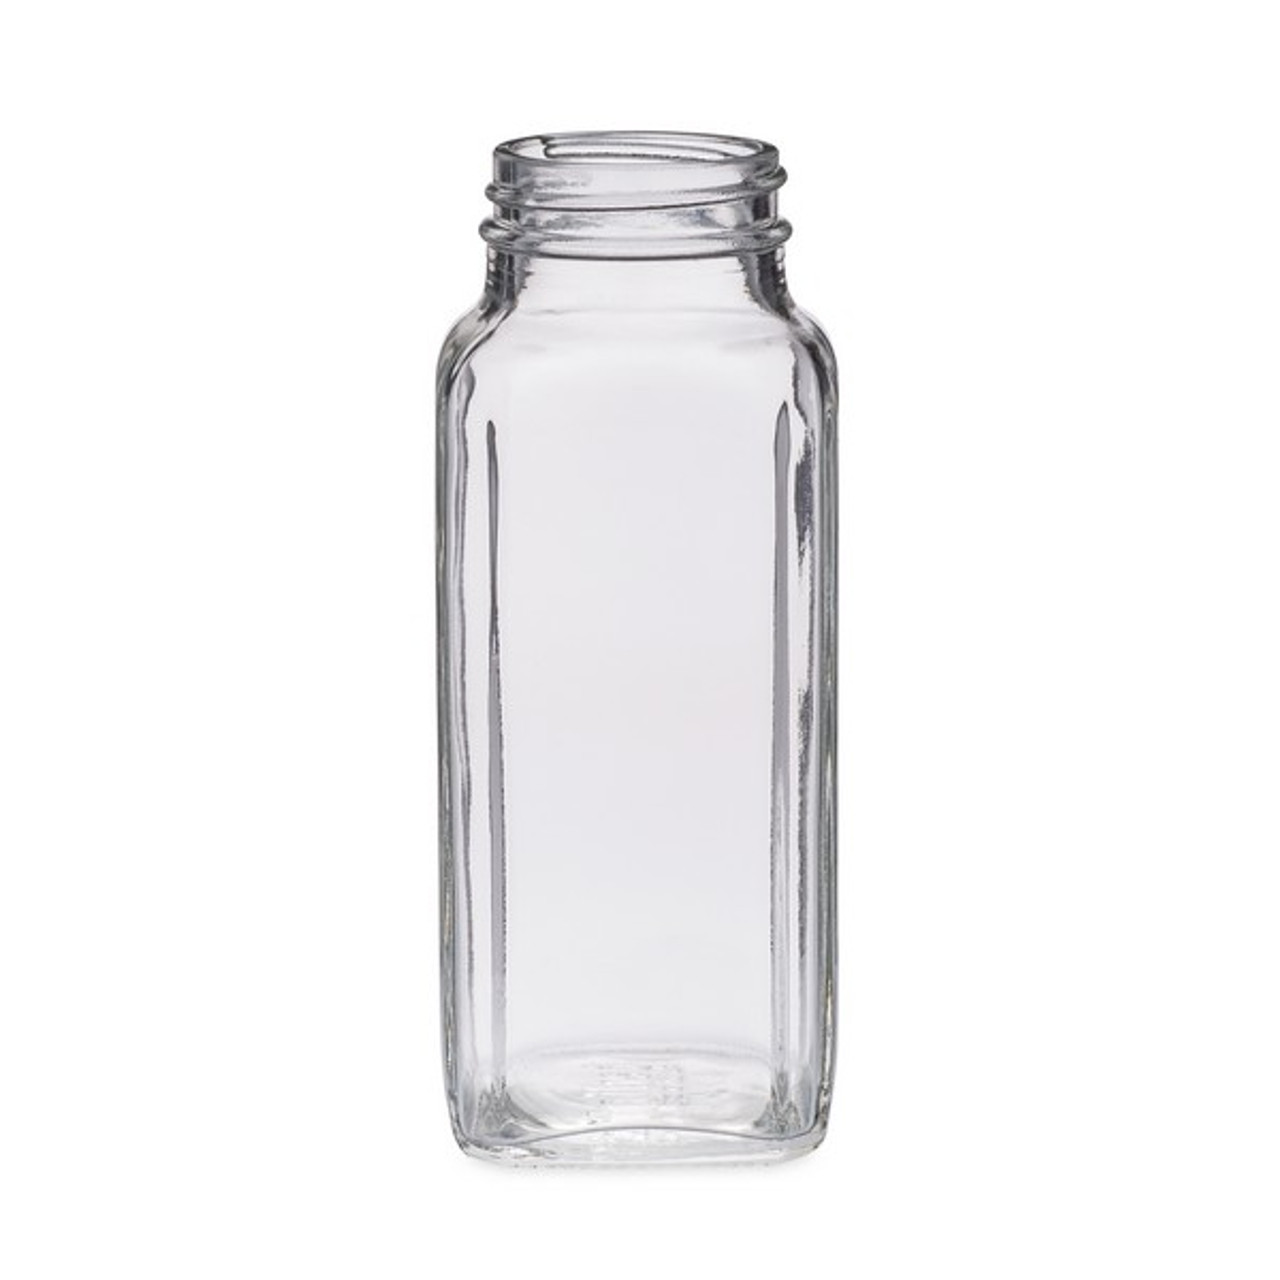 8d2ff710a951 Glass French Square Bottles| Wholesale | Berlin Packaging